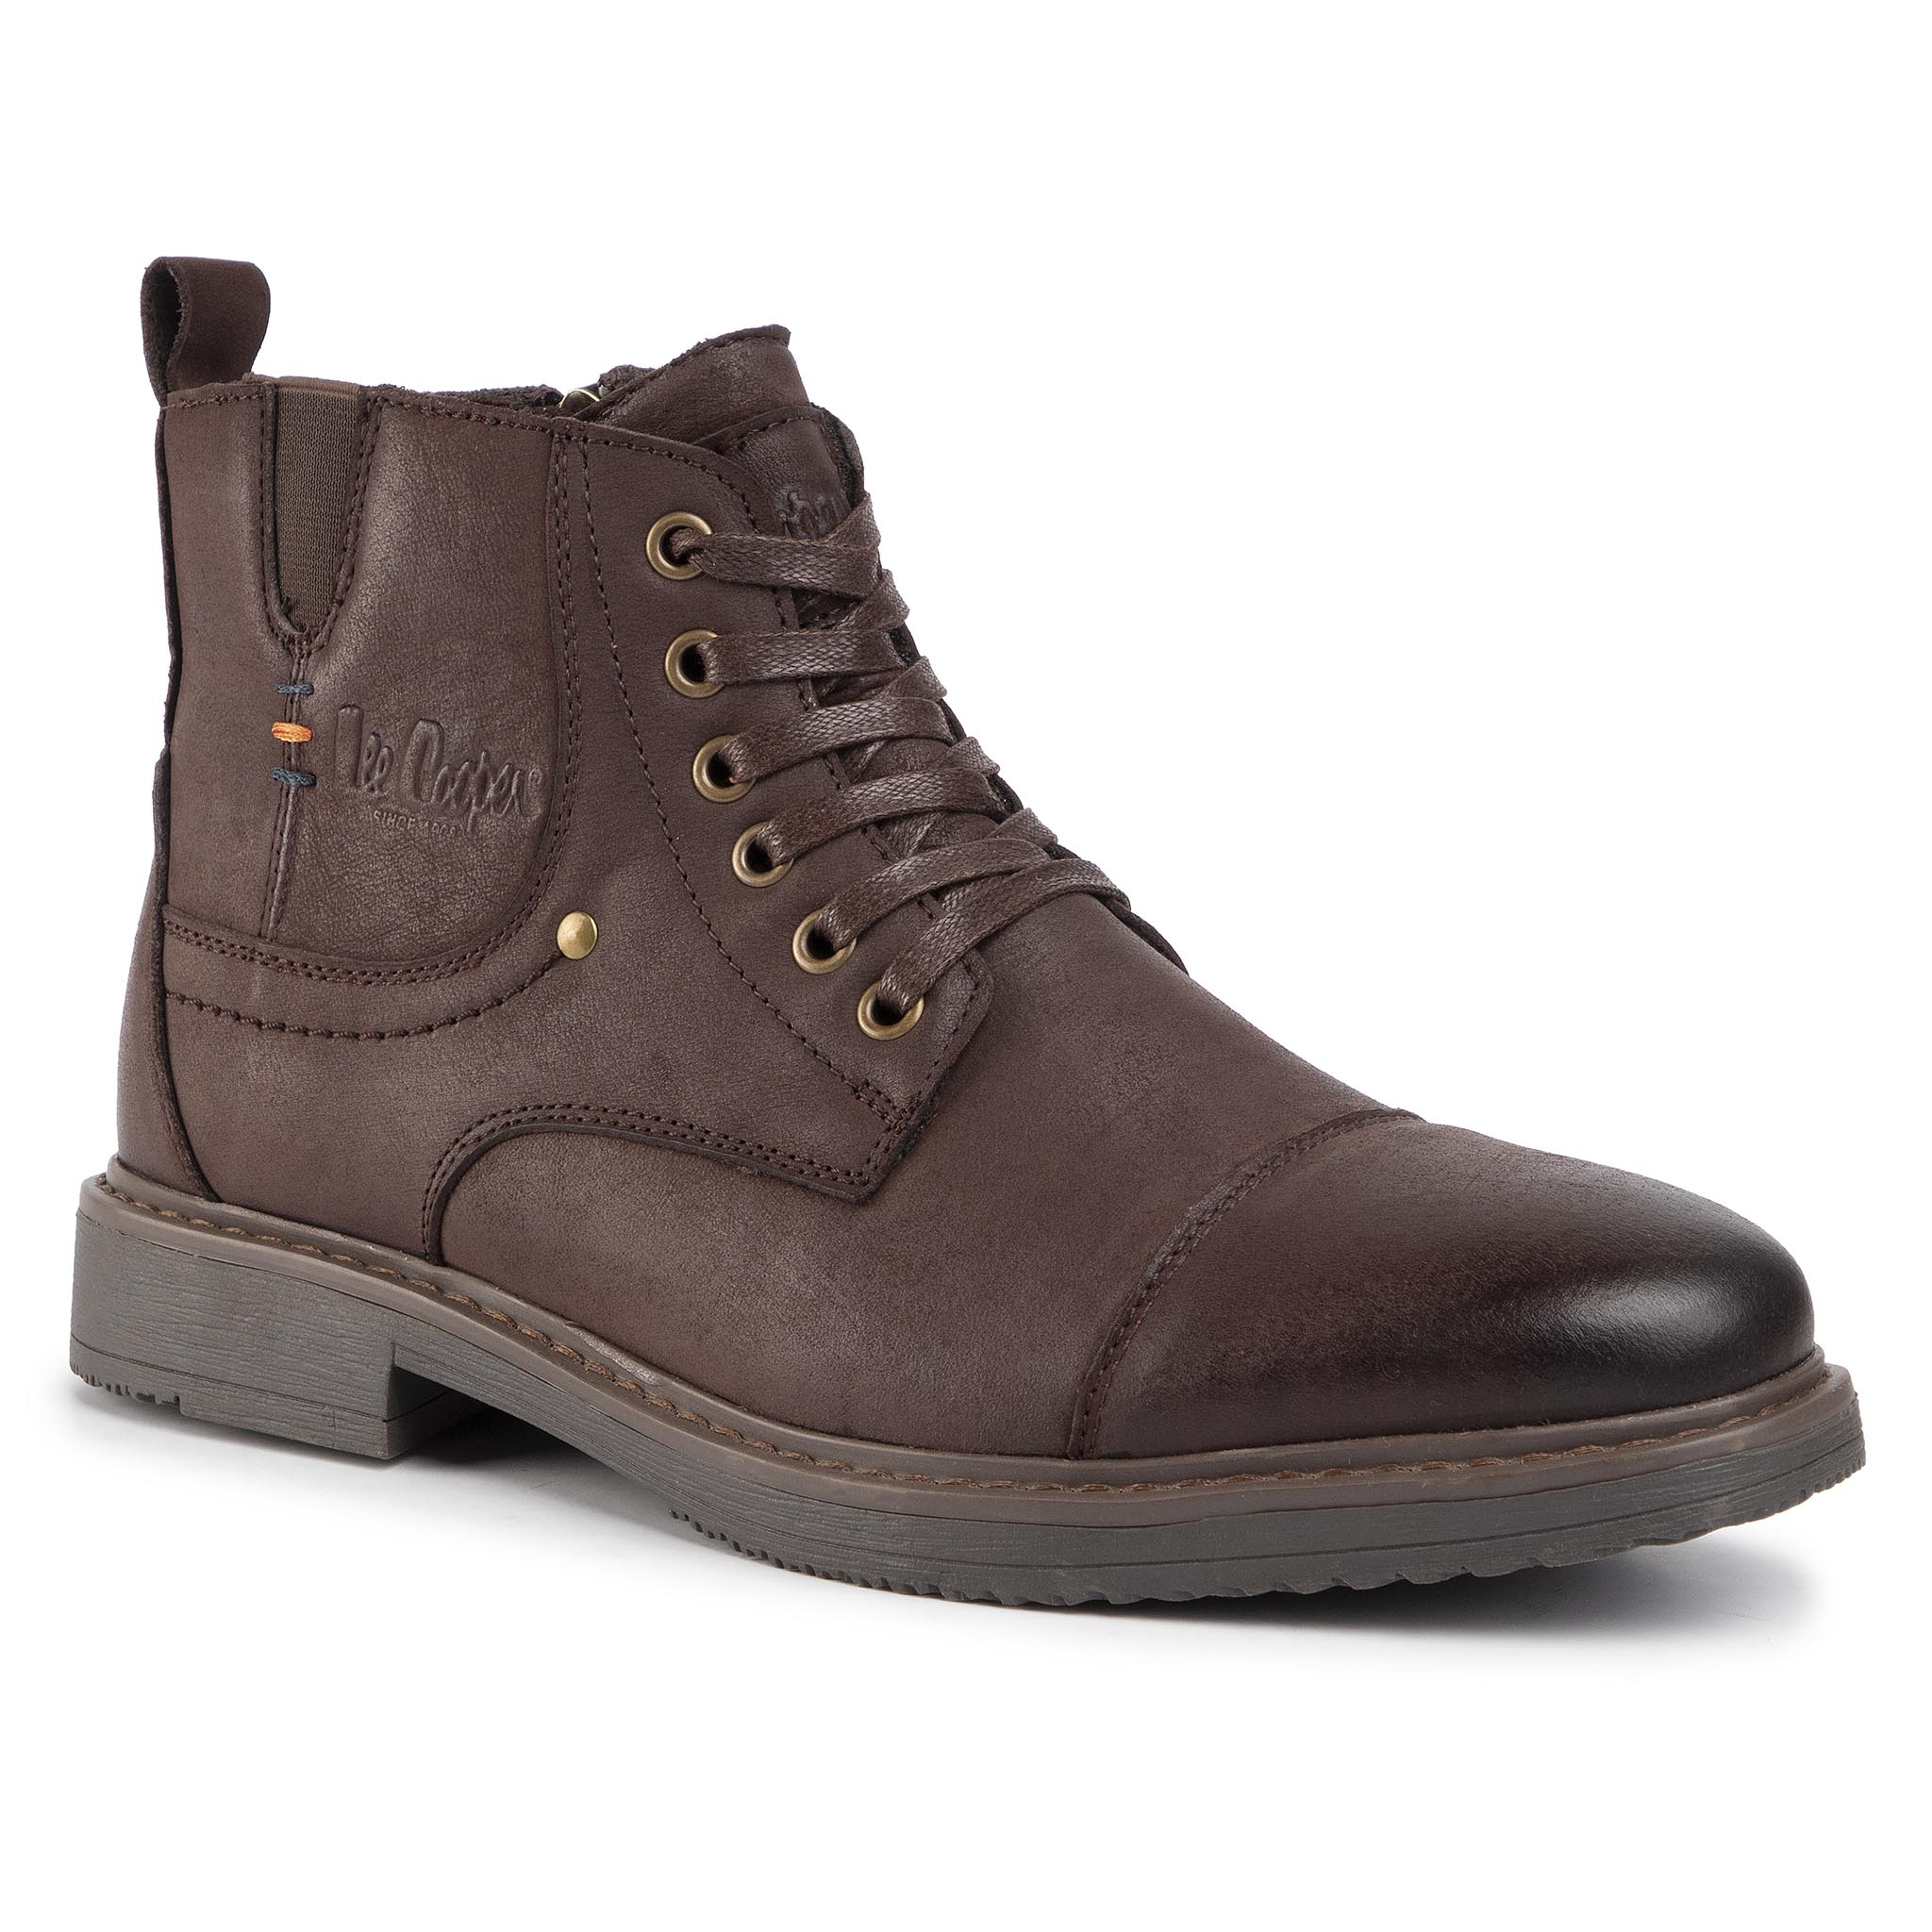 Boots LEE COOPER - LCJ-19-23-012A Brown